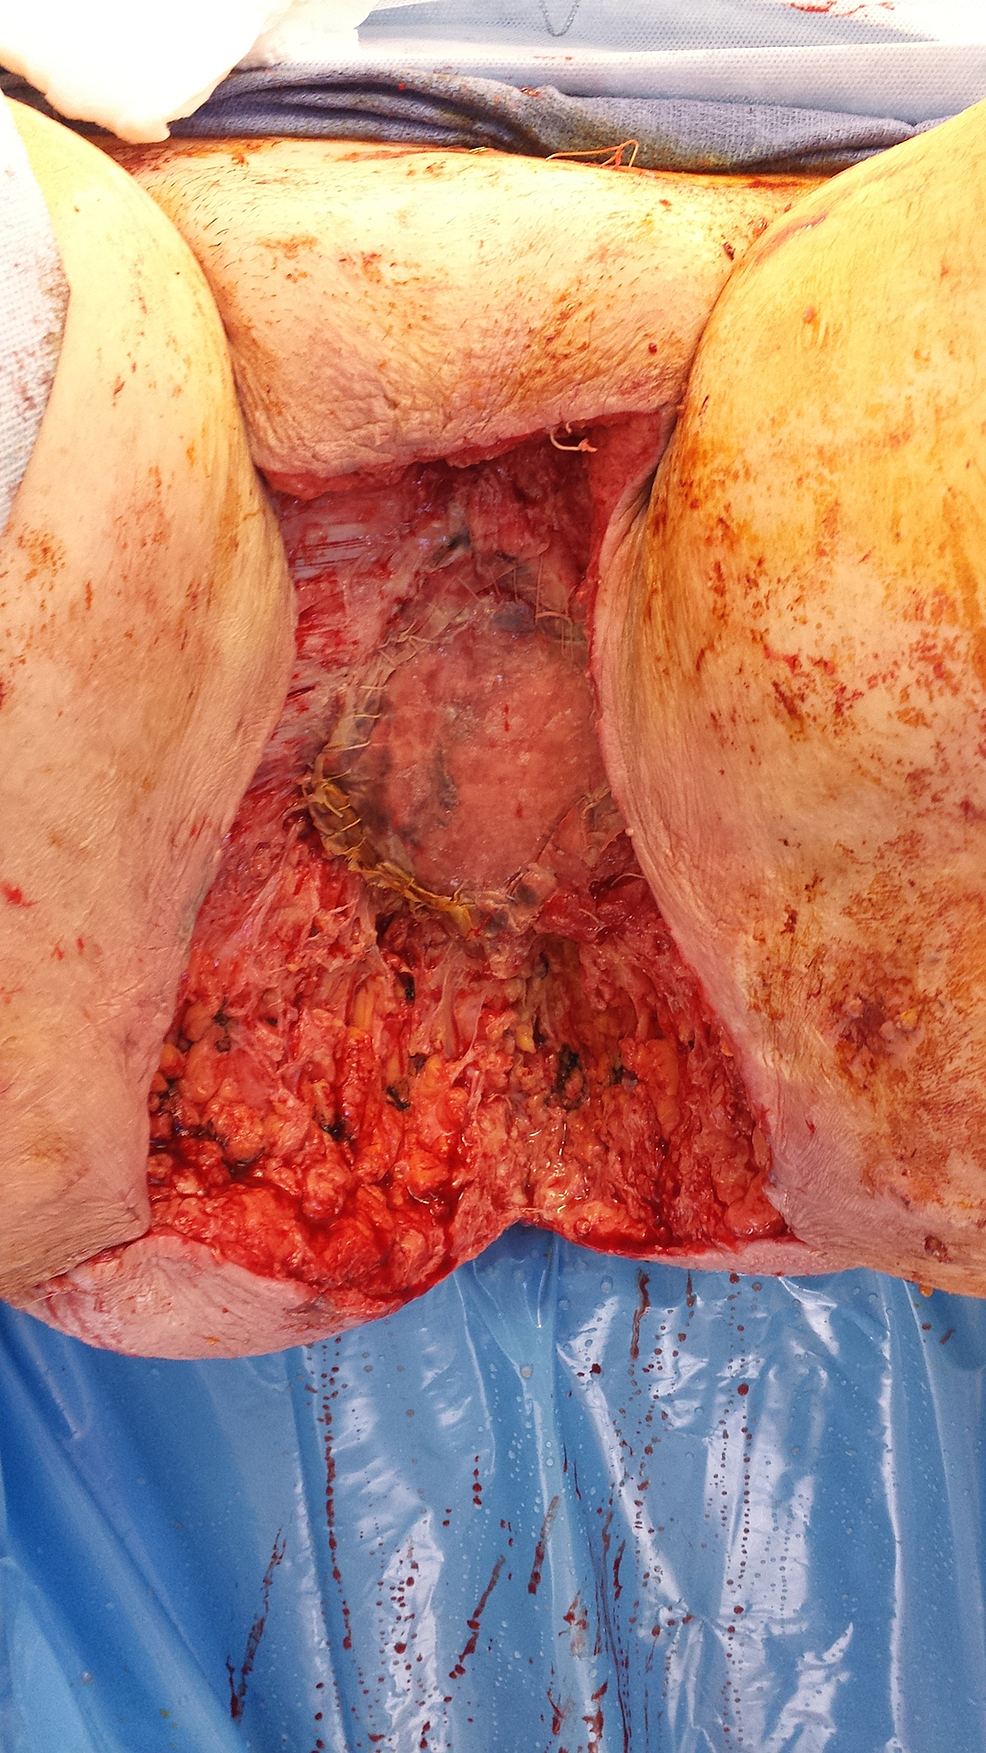 Following-surgical-resection-of-the-tumor-with-partial-closure. Note-the-Polyglactin-910-mesh-covering-an-omental-flap-at-the-pelvic-inlet.